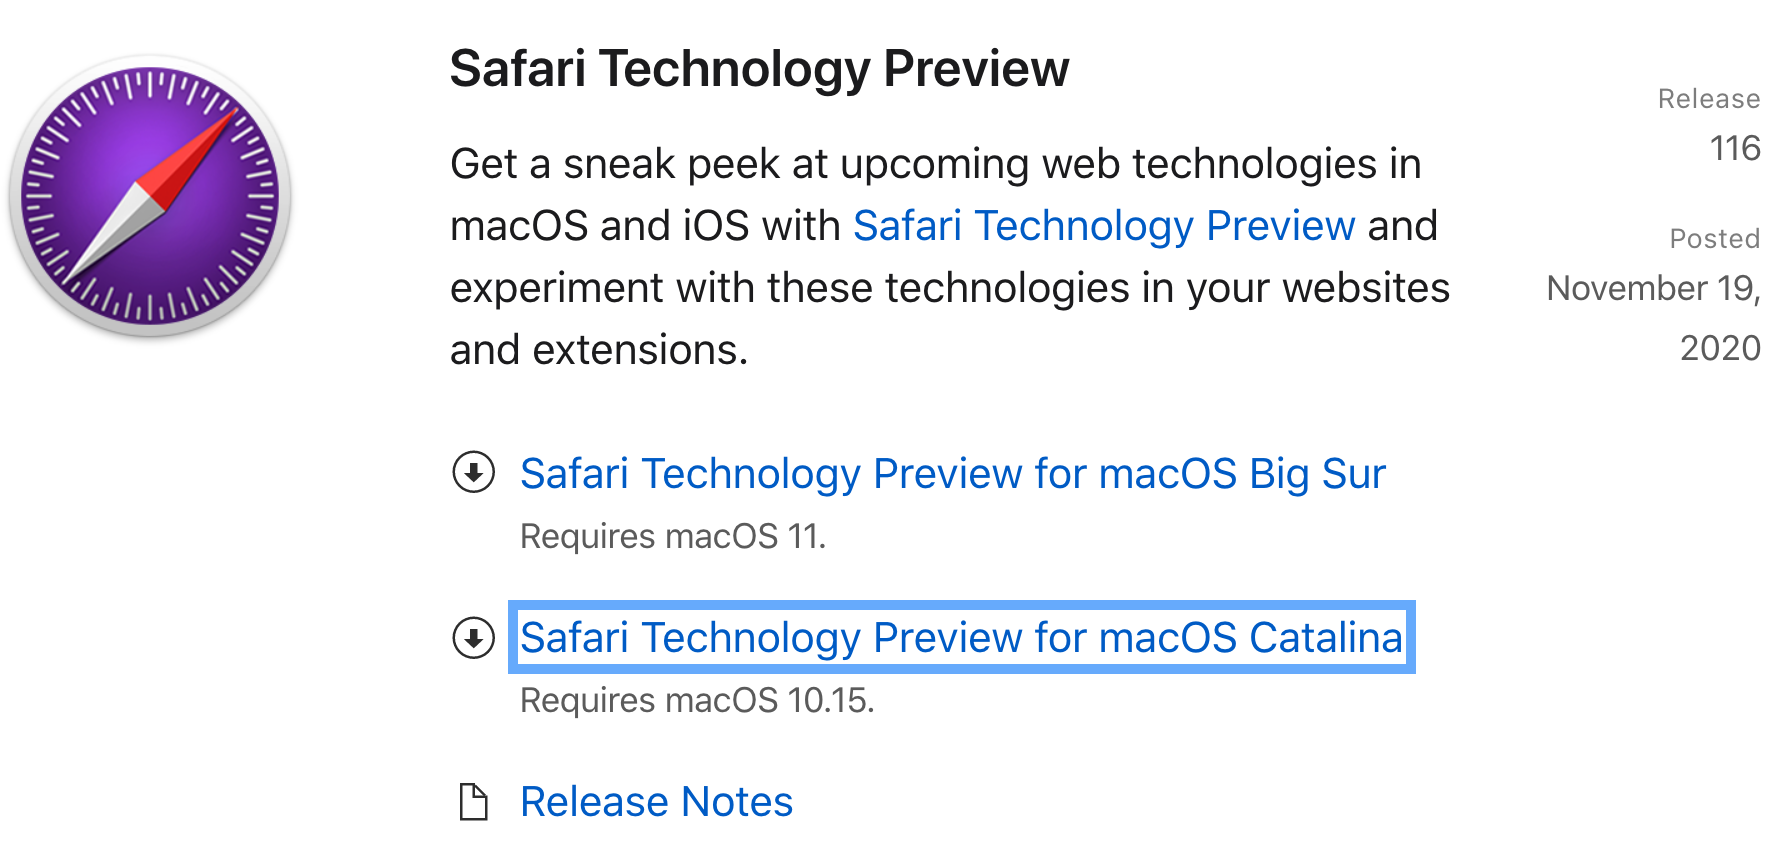 safari-technology-preview-download.png